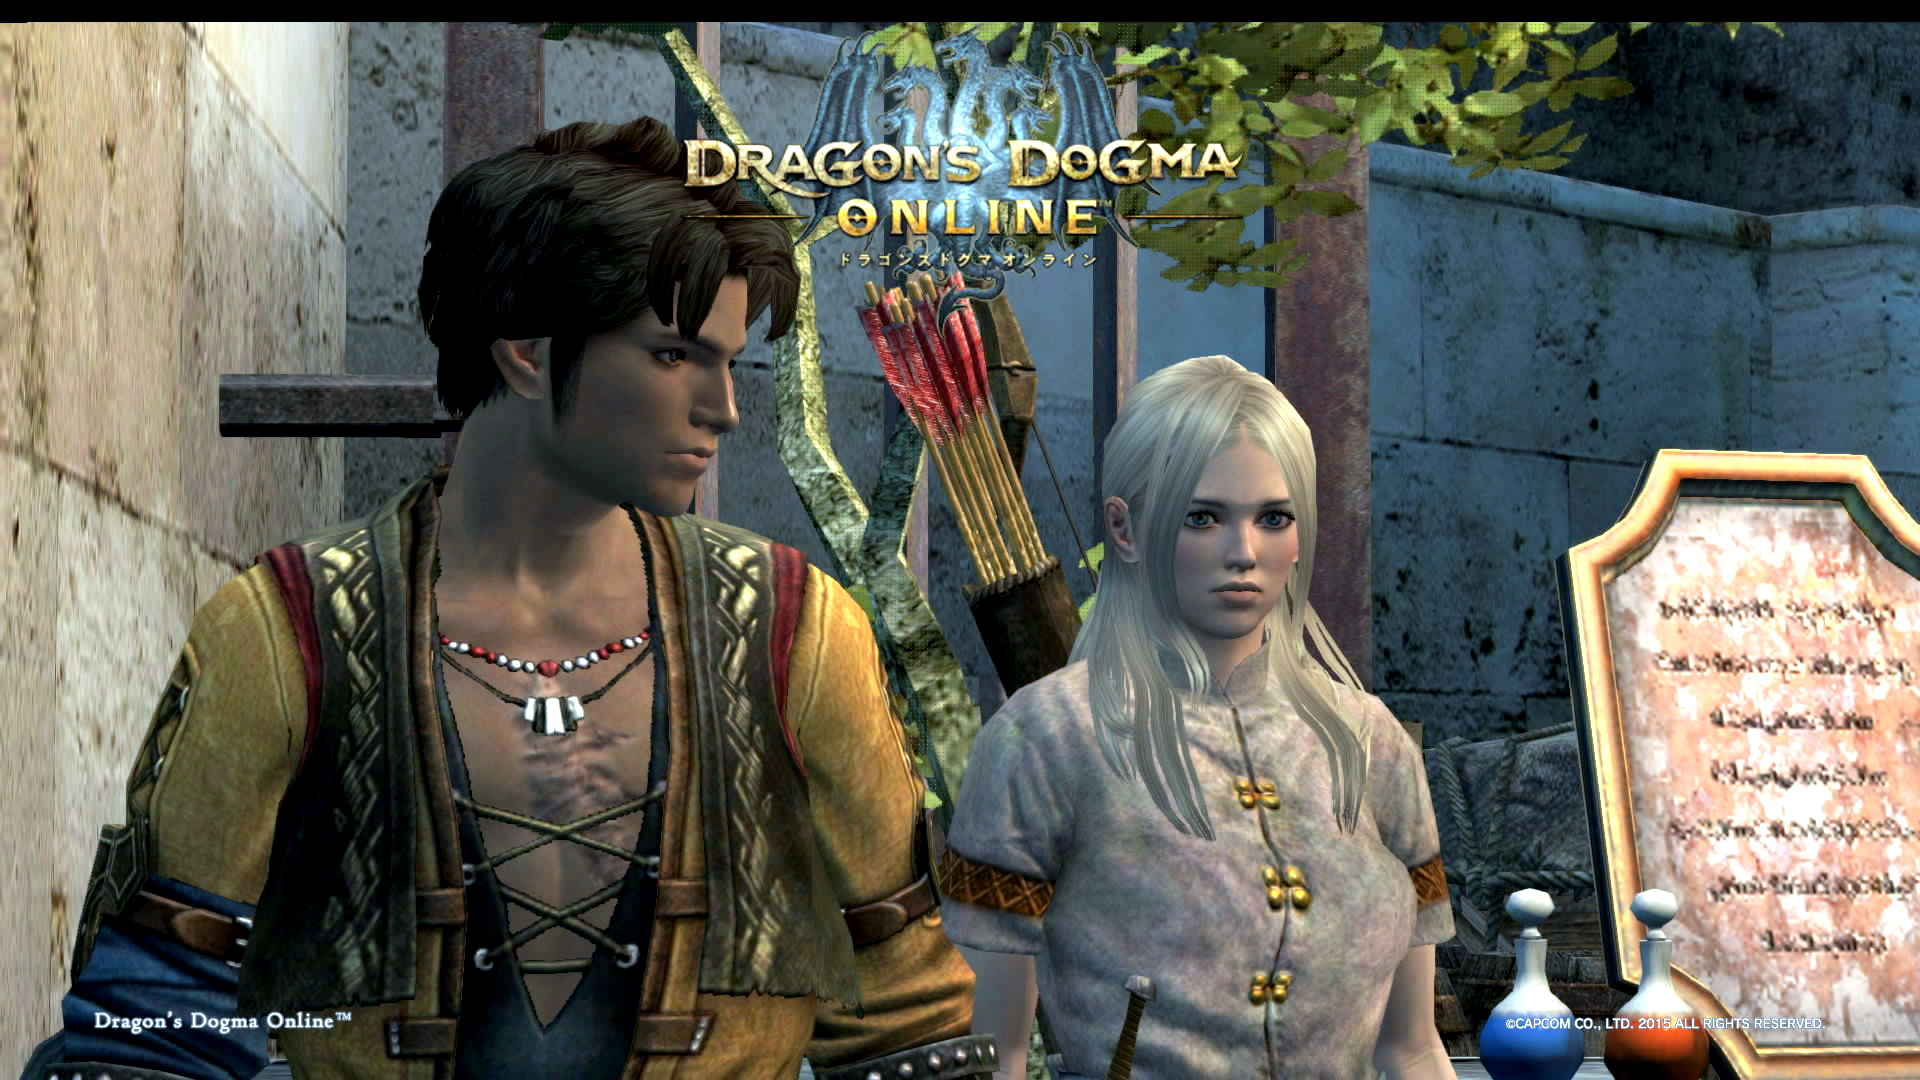 Dragons Dogma Online__8A